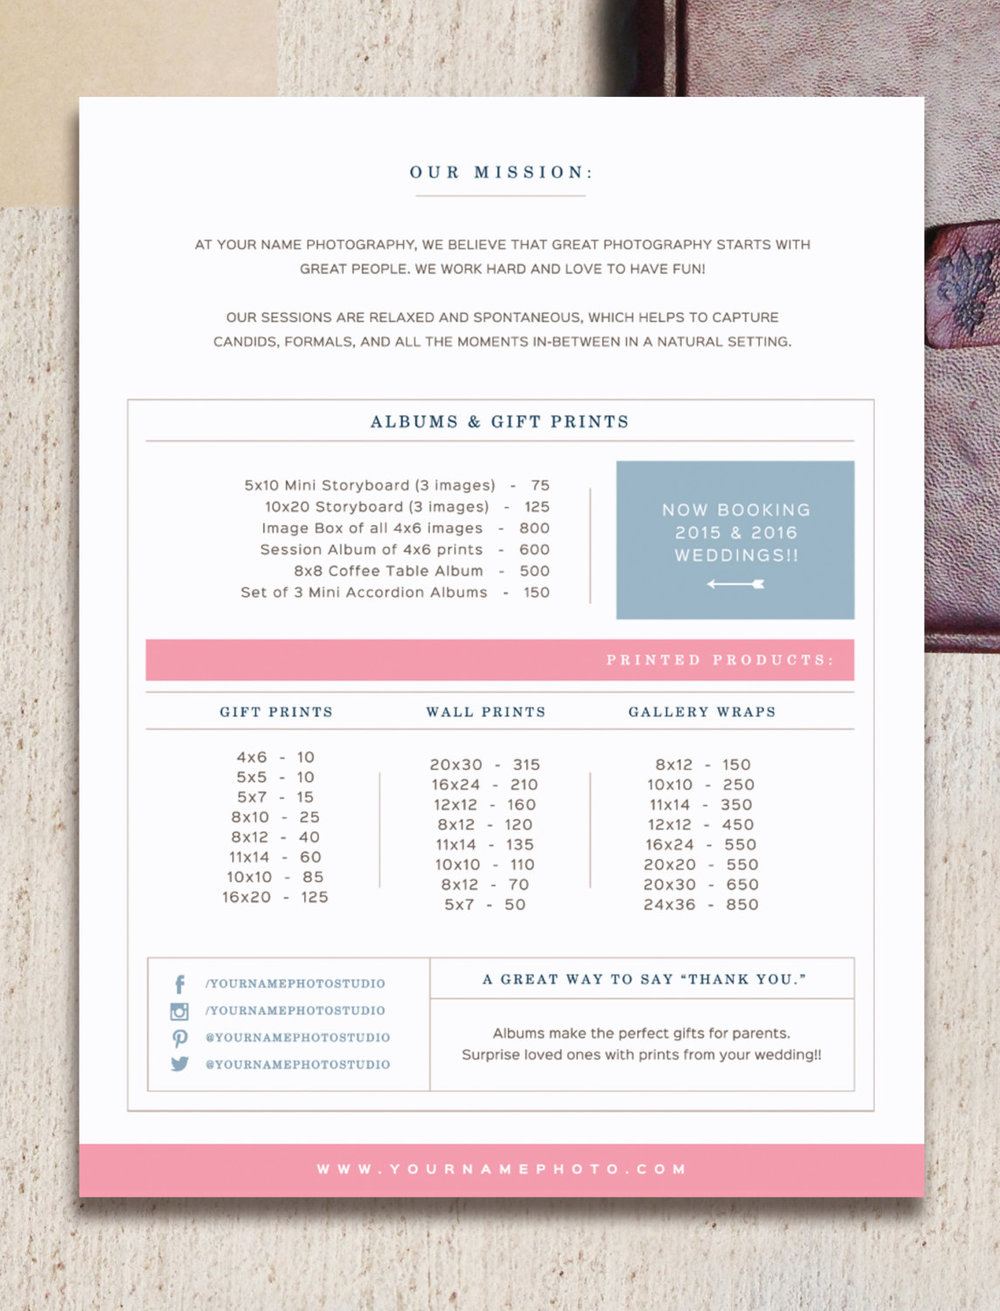 Pricing Guide Template For Wedding Photographers   Digital Printed Products Price  List   Photoshop Files   Letterhead Design   M0131